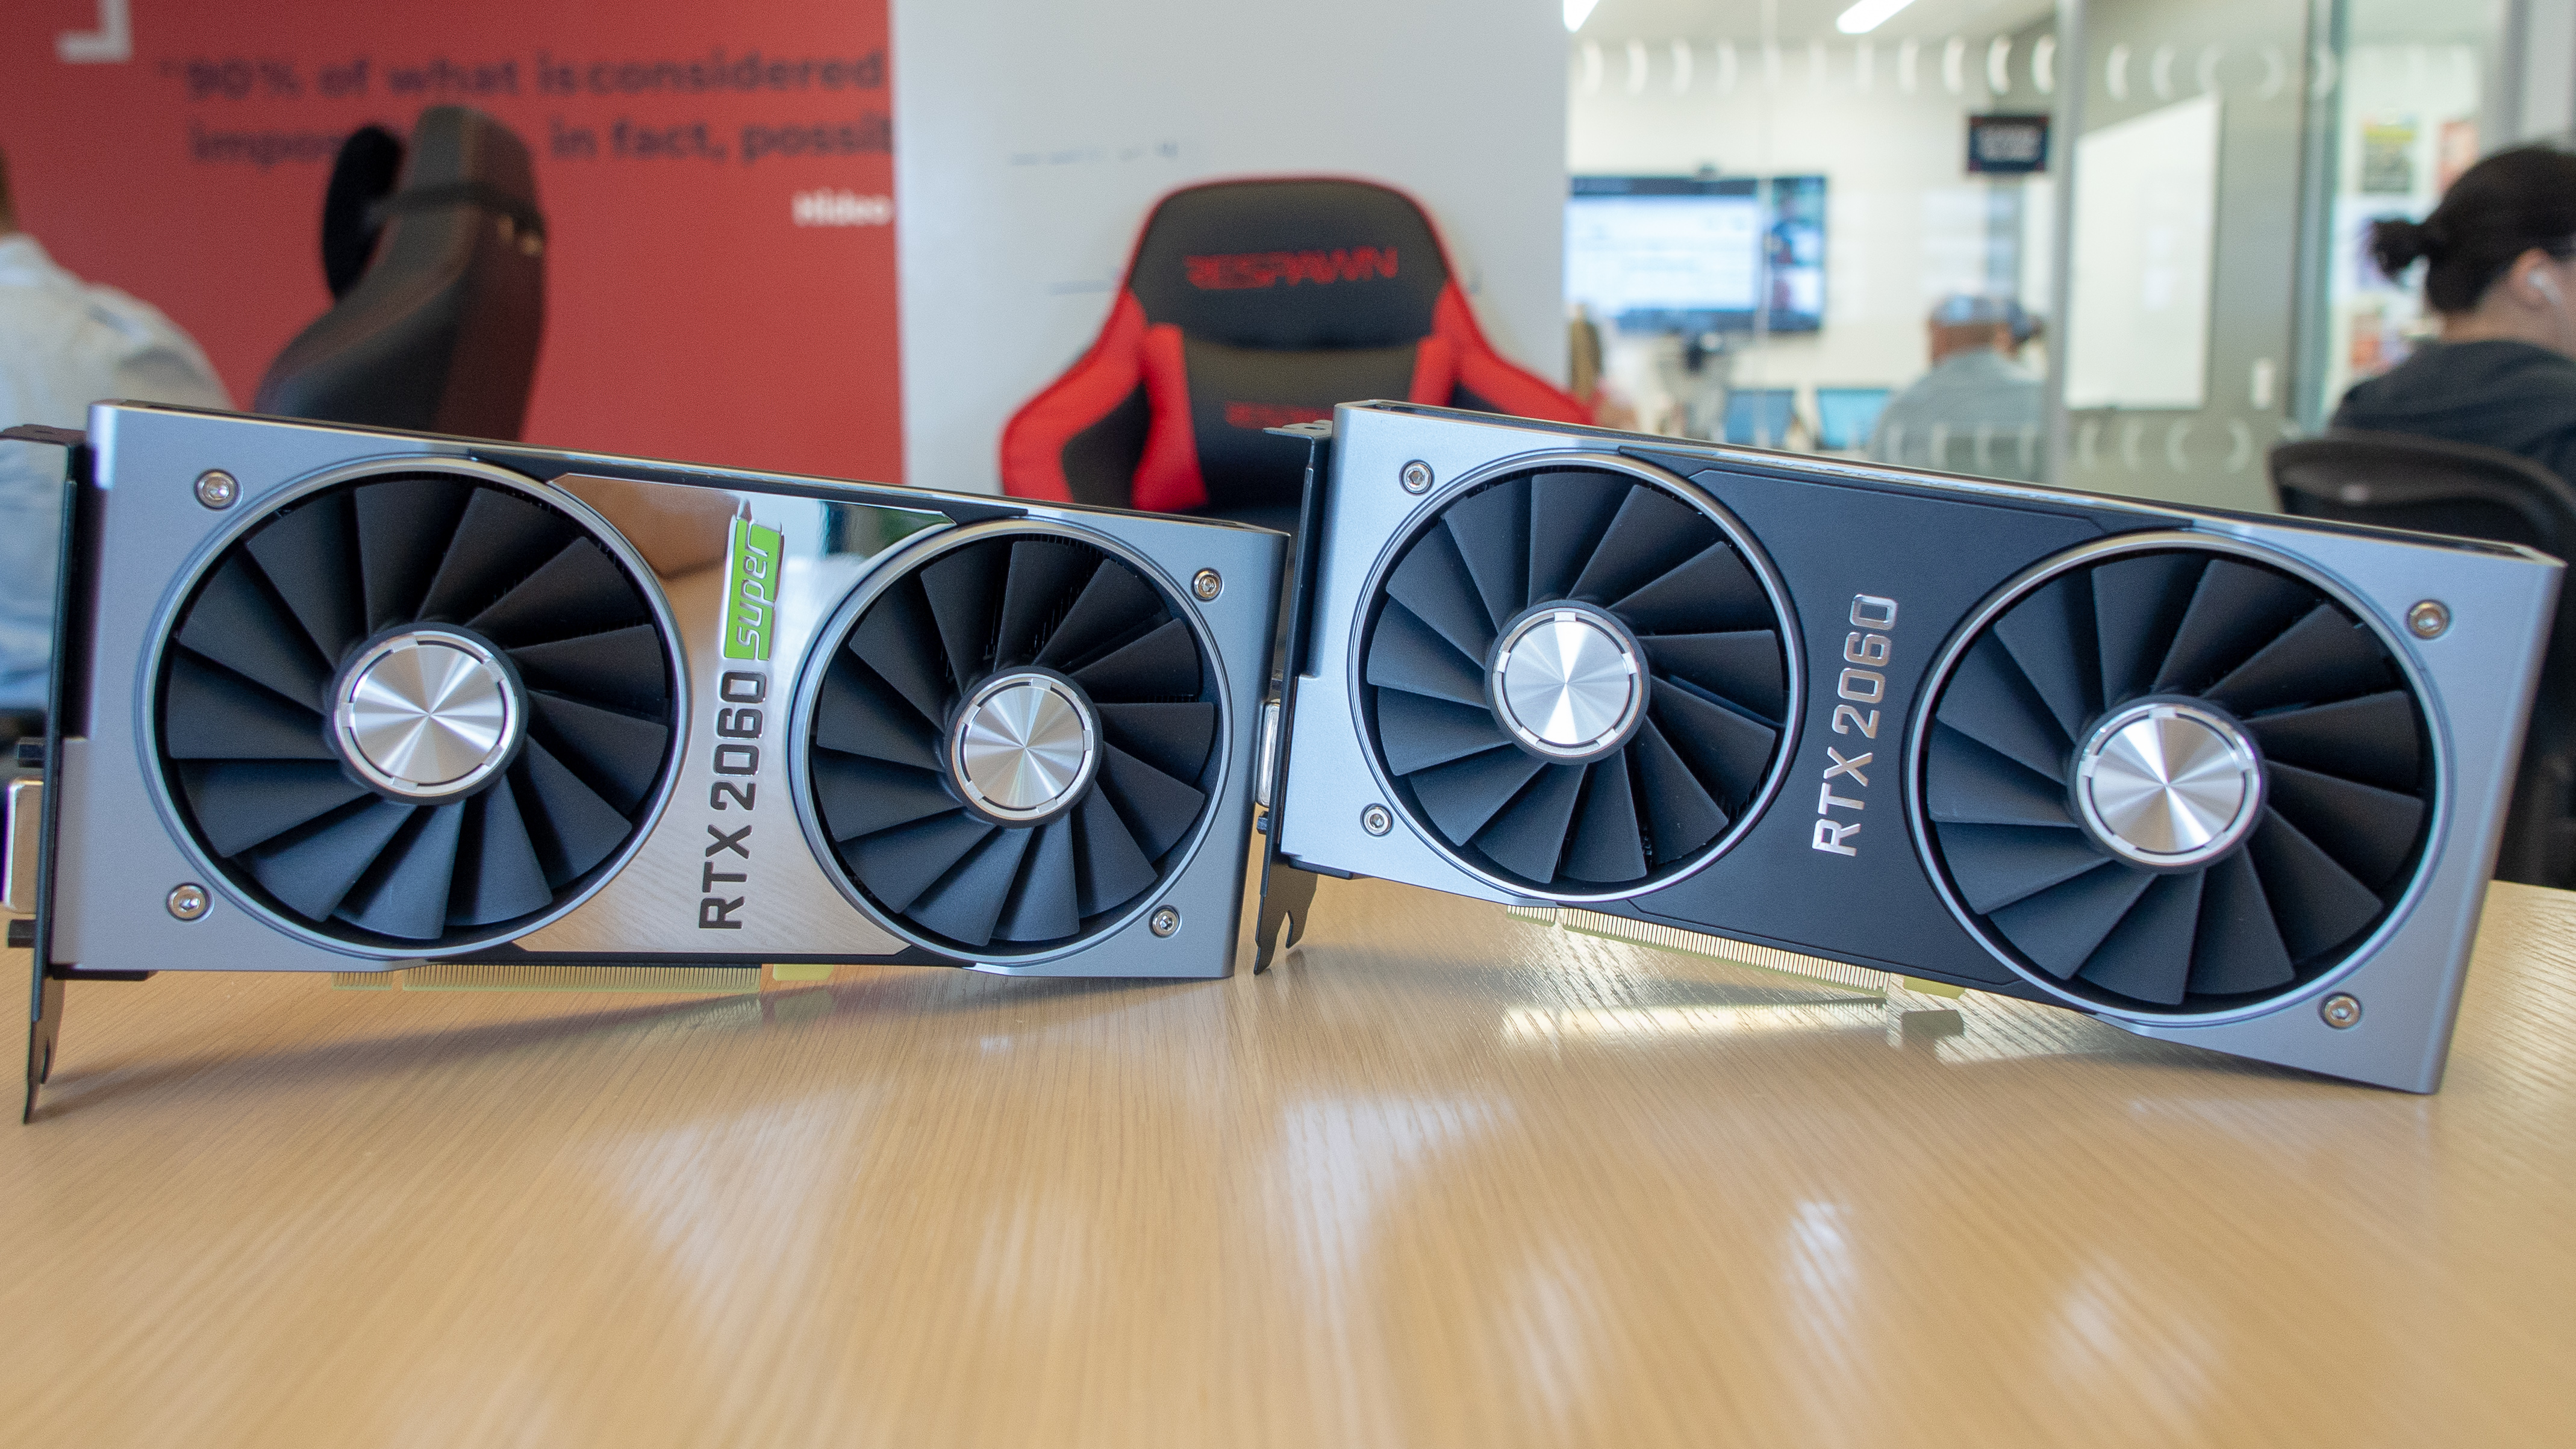 Best 1080p Graphics Cards 2020 The Best Gpus For 1080p Gaming